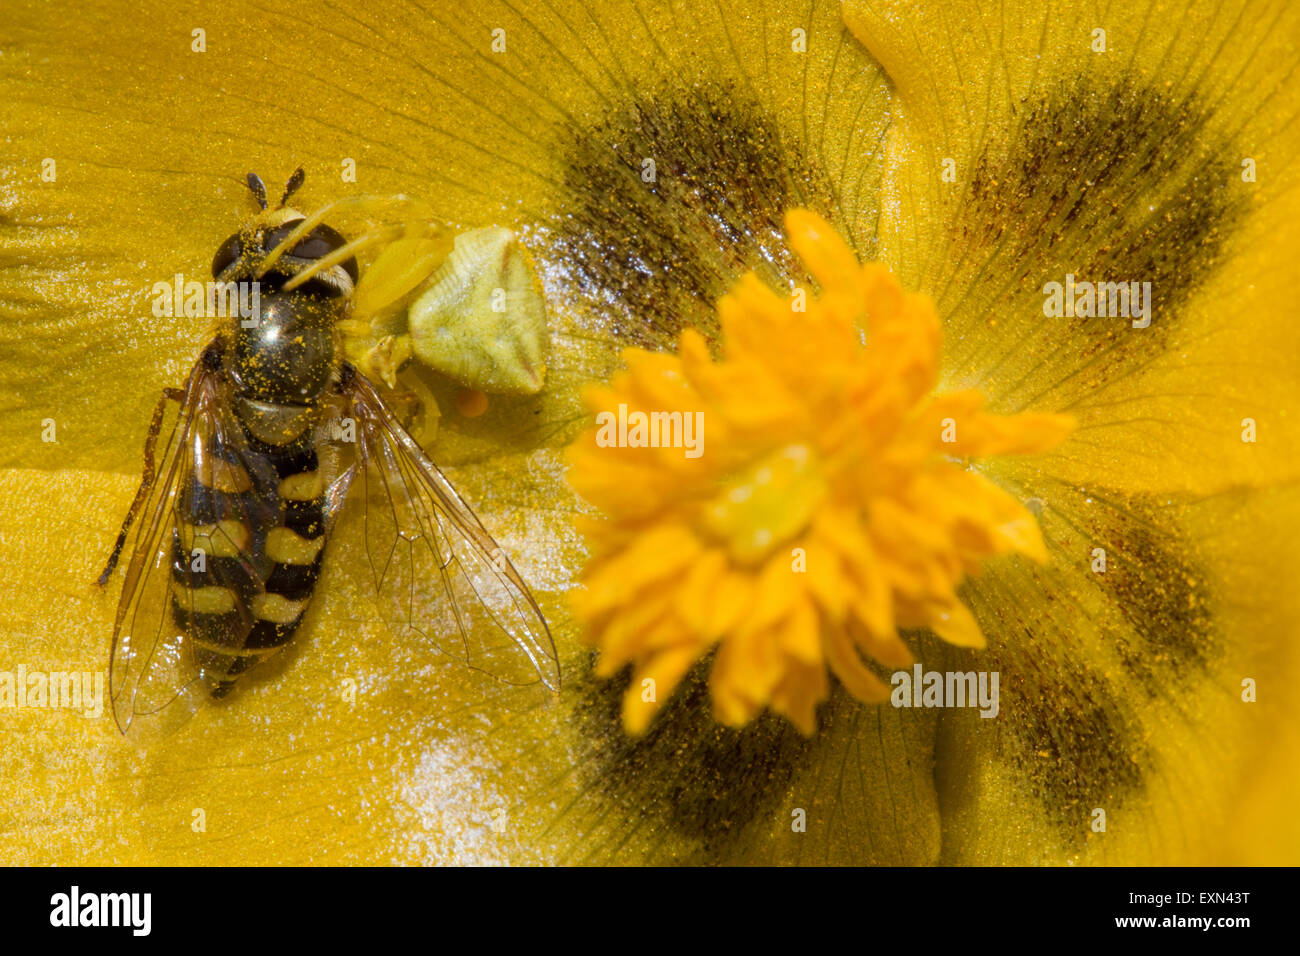 Yellow crab spider (sp) Thomisus onustus, invertebrate eating a hover fly. Lemnos/ Limnos island, Greece. - Stock Image